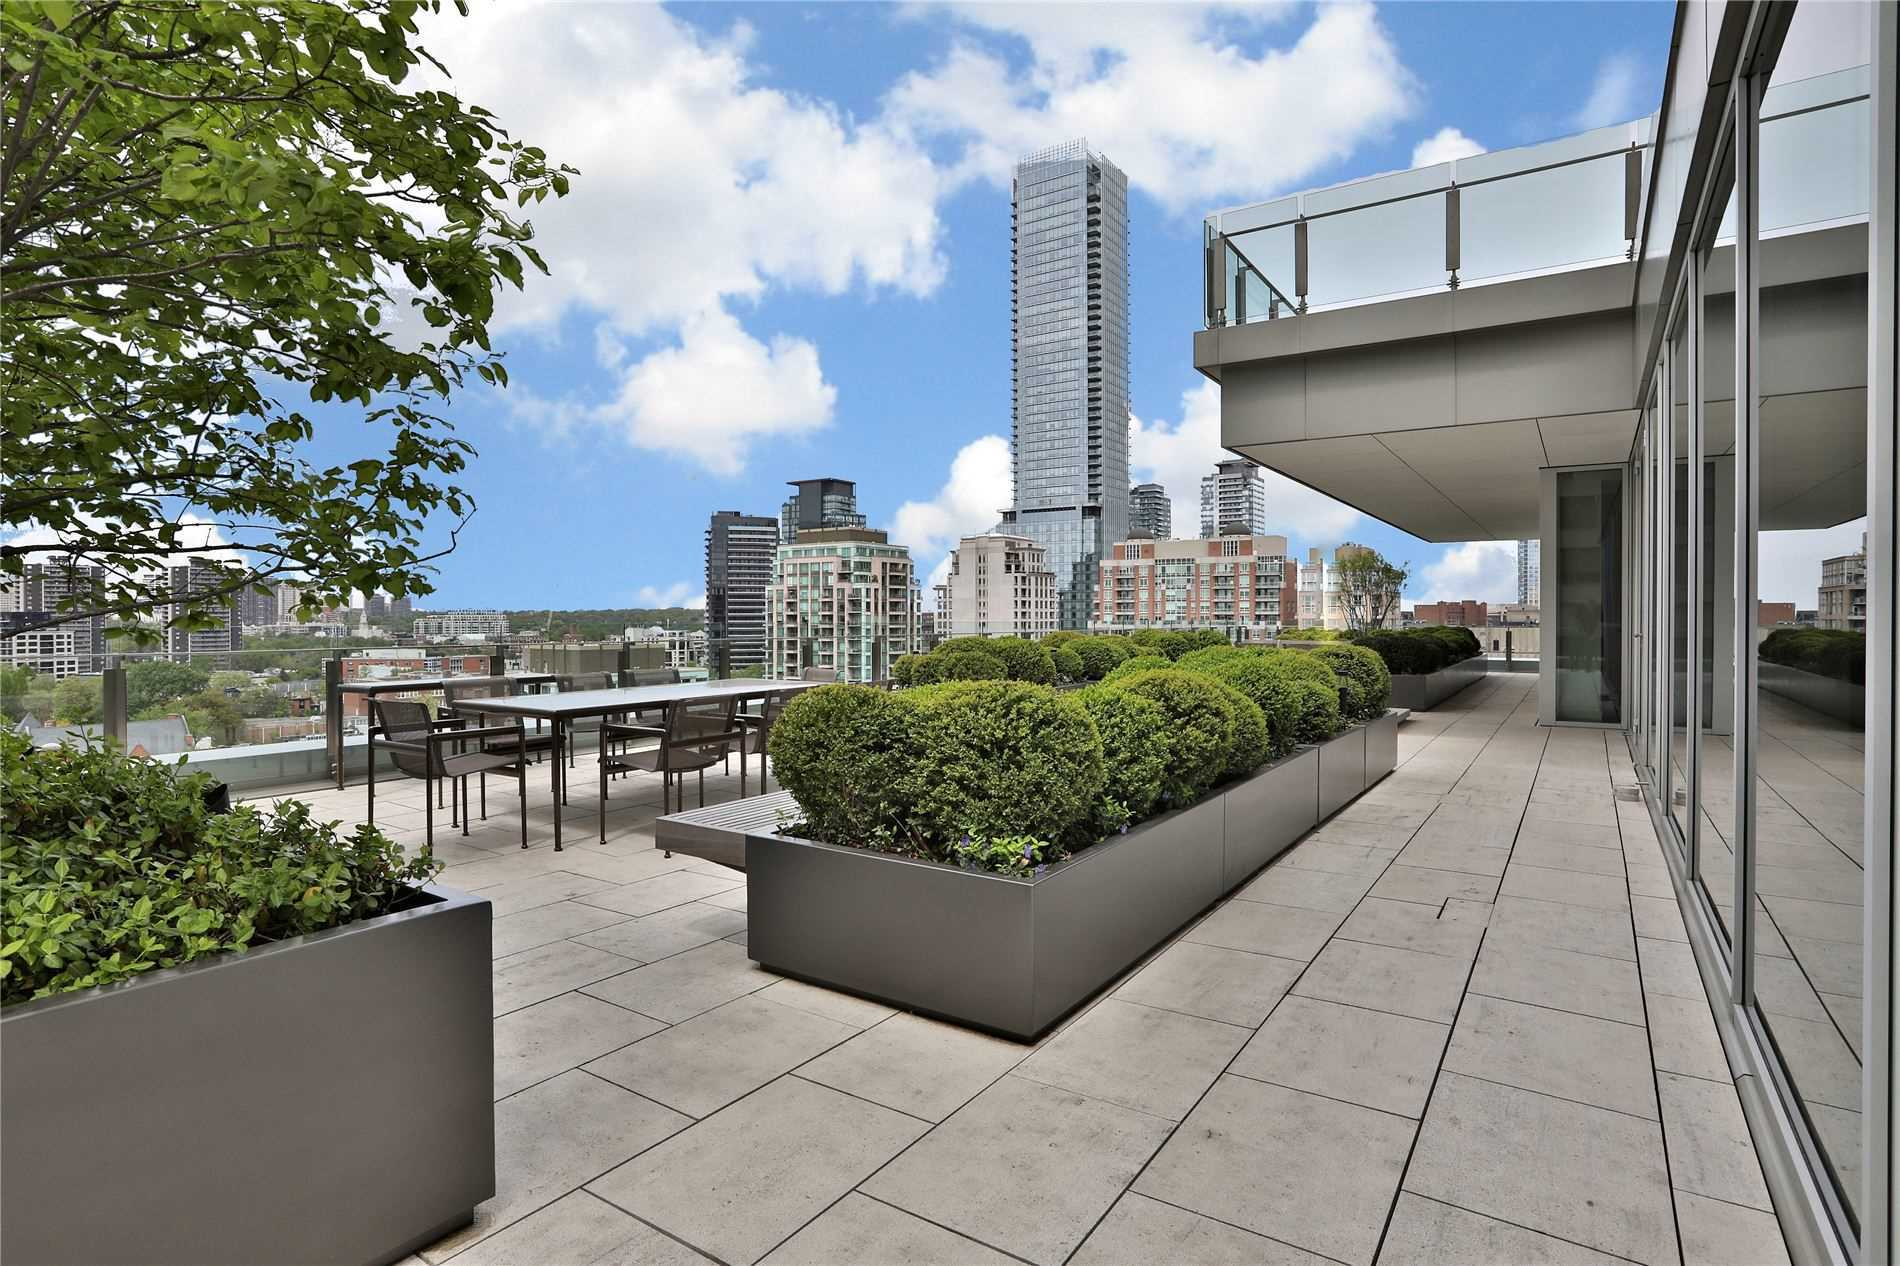 155 Cumberland St, Toronto, Ontario M5R1A2, 3 Bedrooms Bedrooms, 10 Rooms Rooms,3 BathroomsBathrooms,Condo Apt,For Sale,Cumberland,C4777900